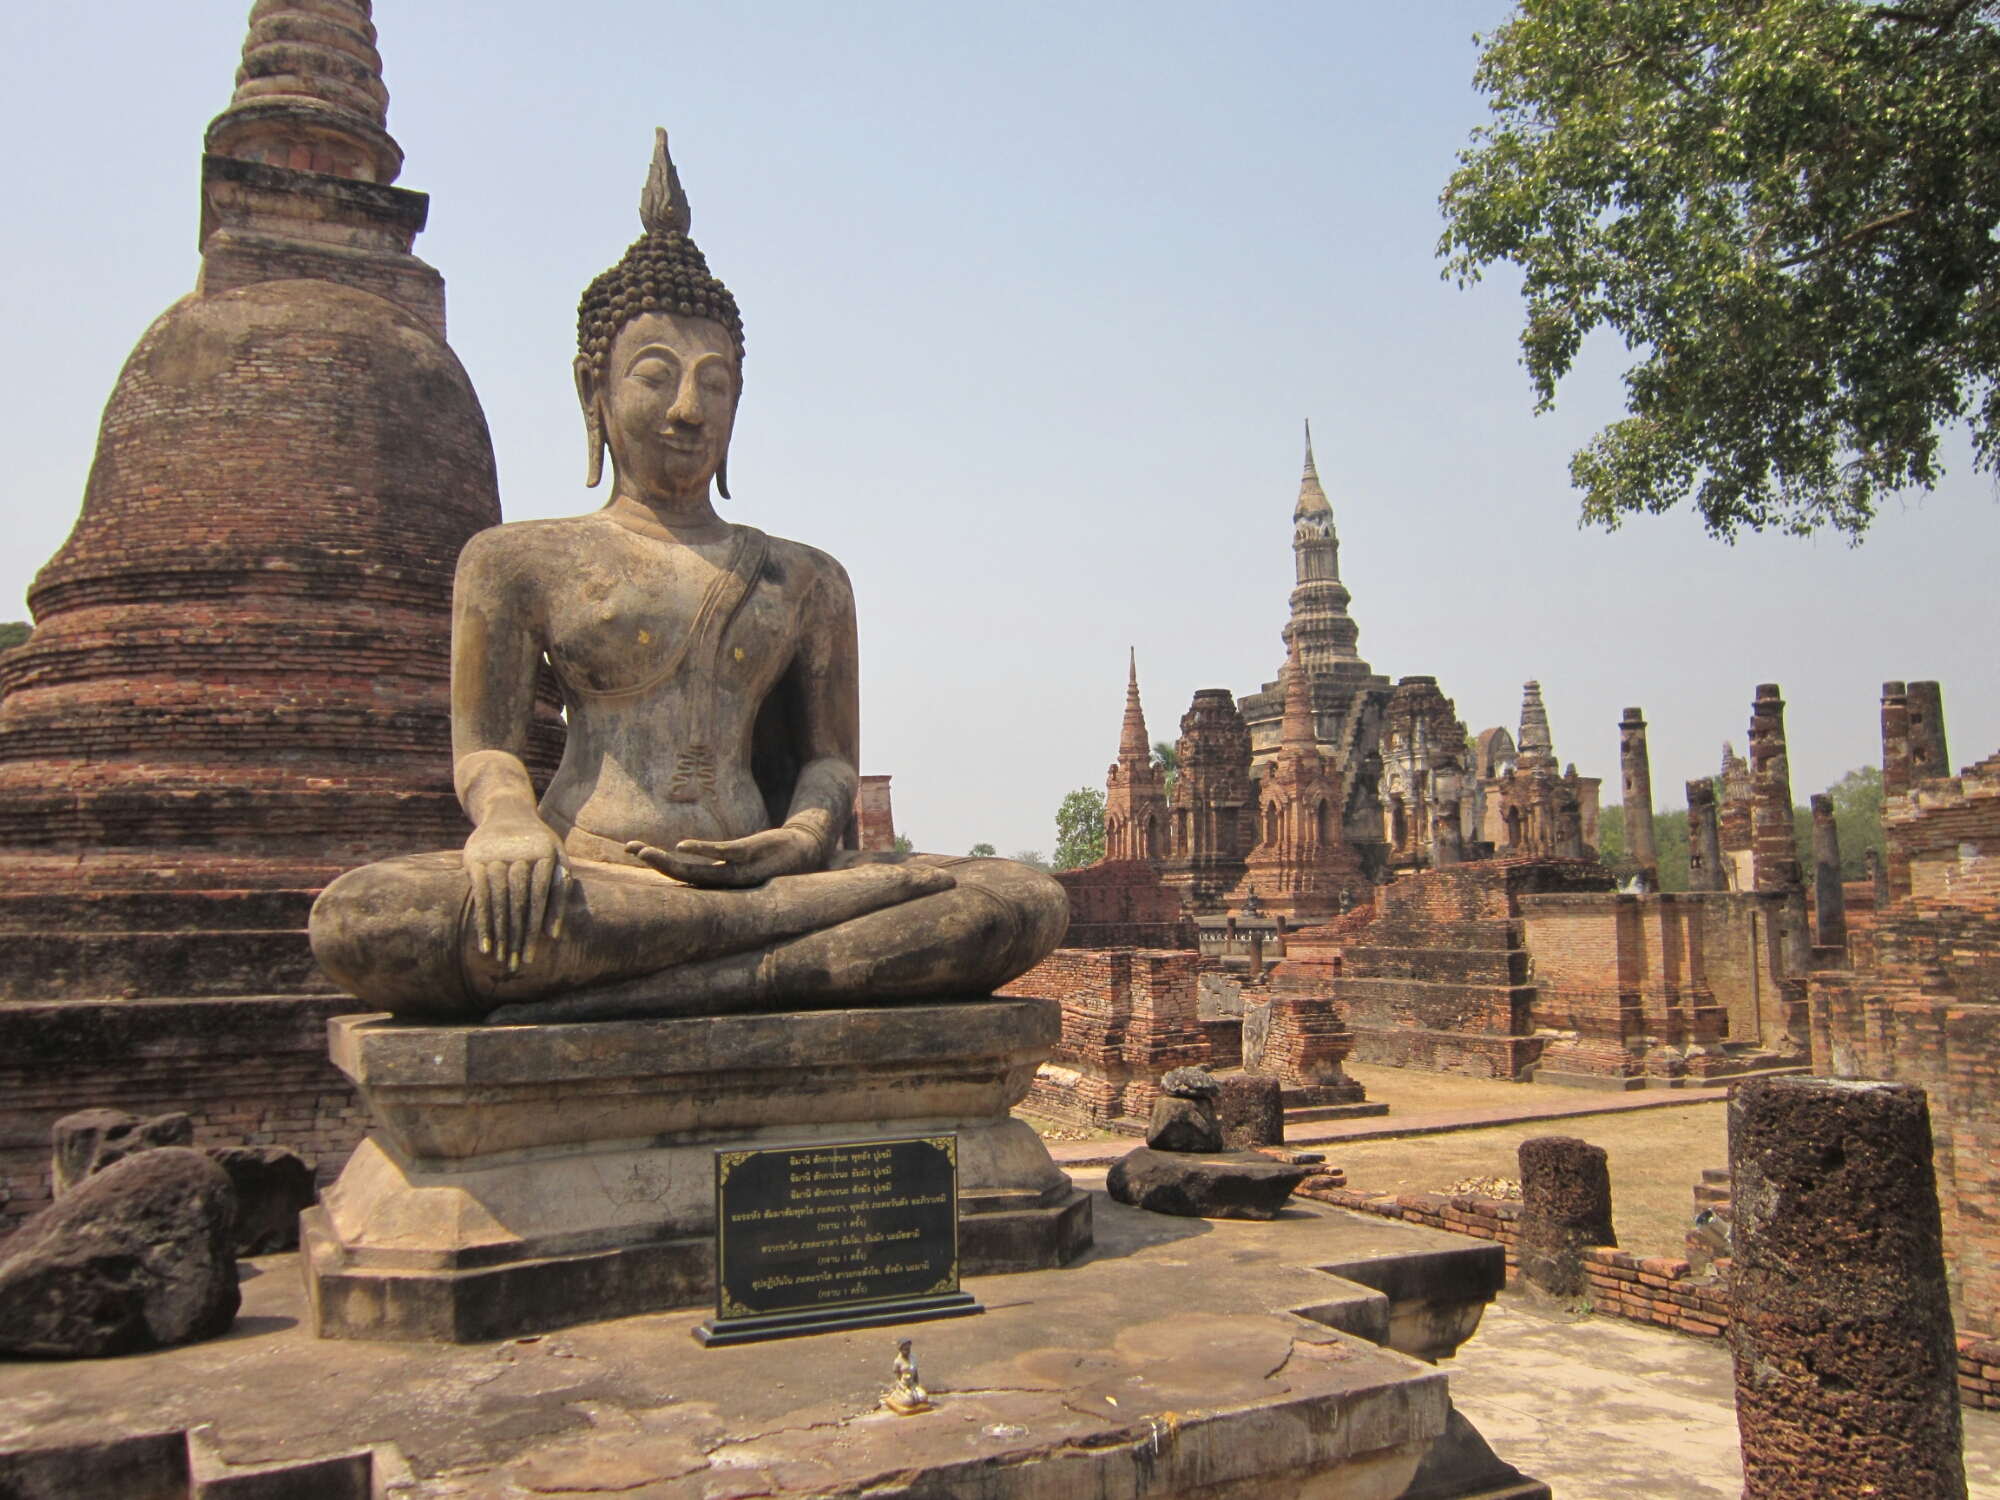 Buddha statue and ruins at Sukhothai Historical Park, Thailand